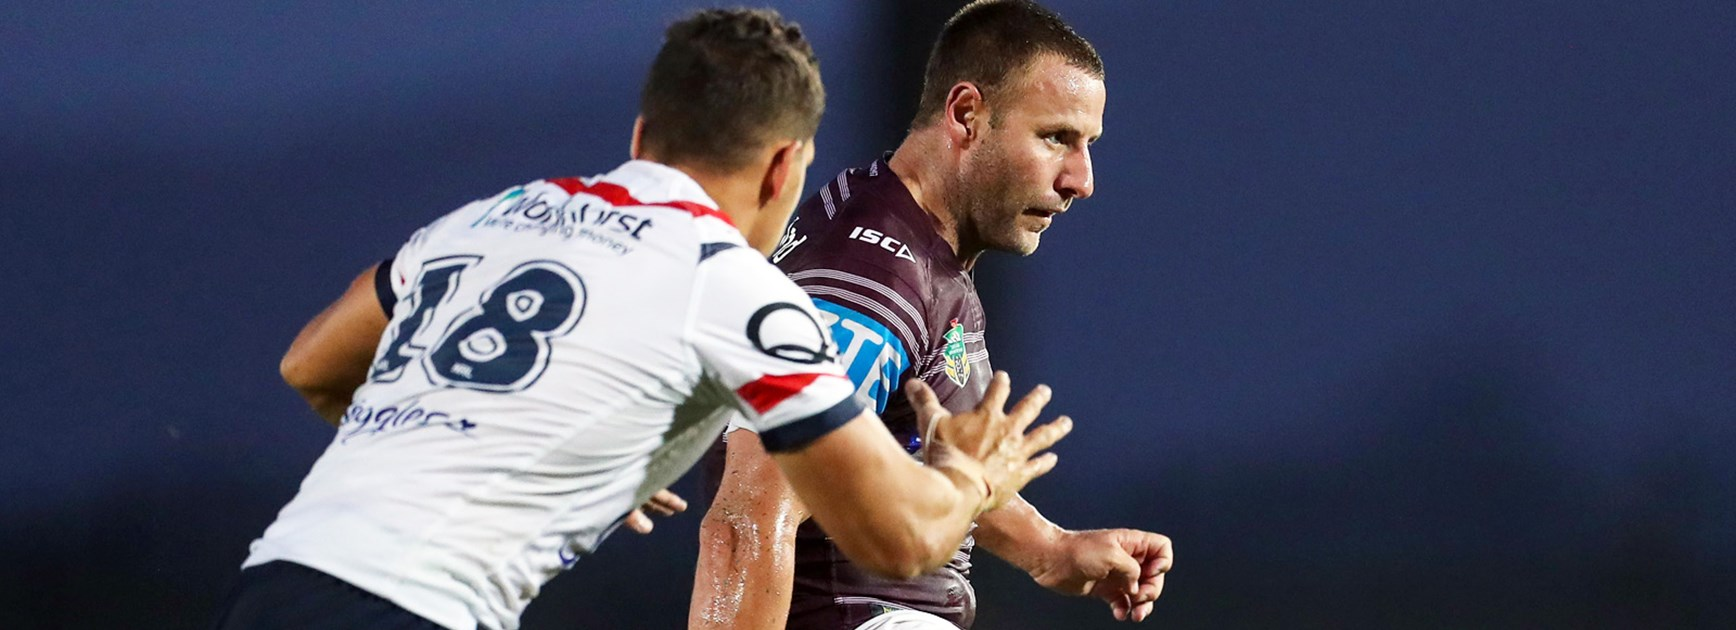 Sea Eagles recruit Blake Green in action against the Roosters.